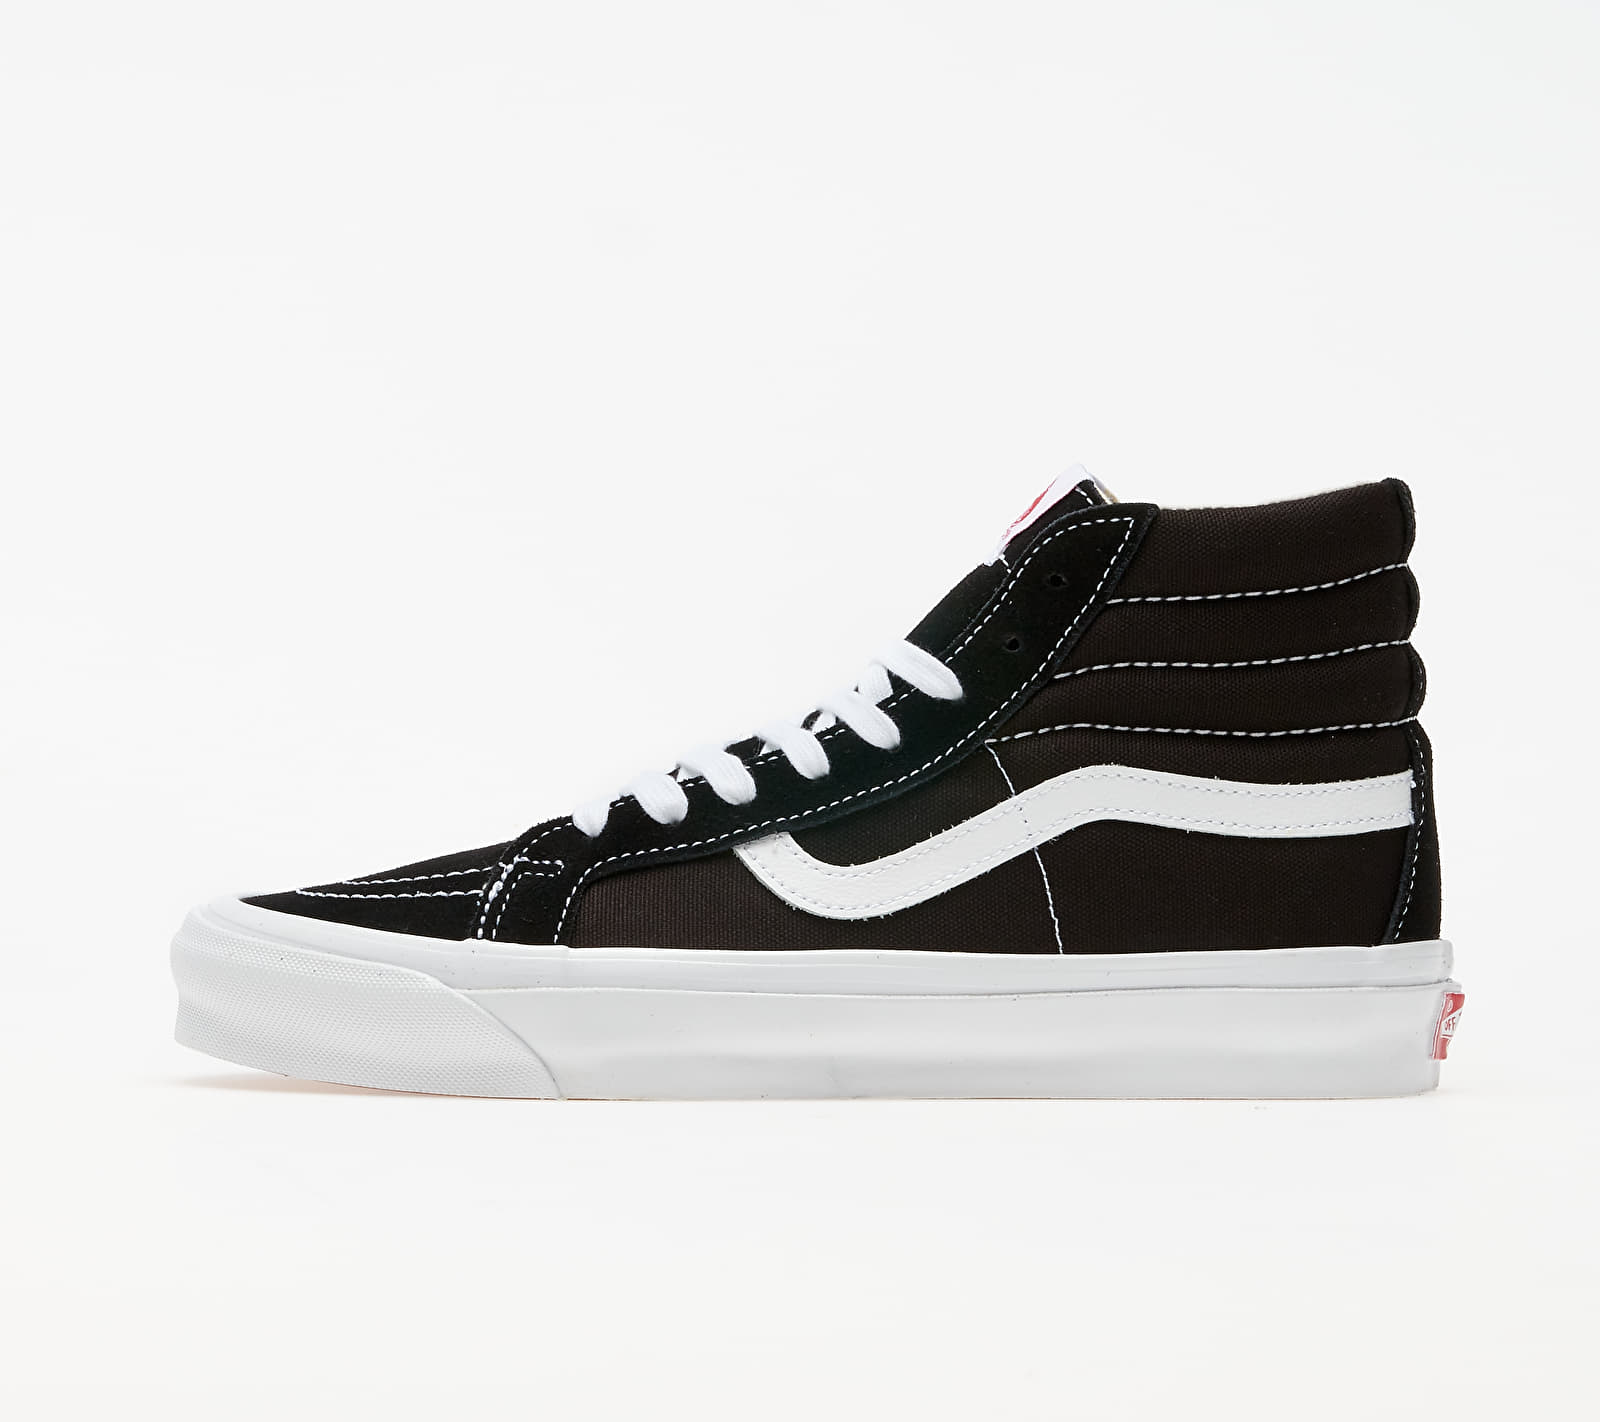 Vans Vault OG Sk8-Hi LX (Suede/ Canvas) Black/ True White EUR 38